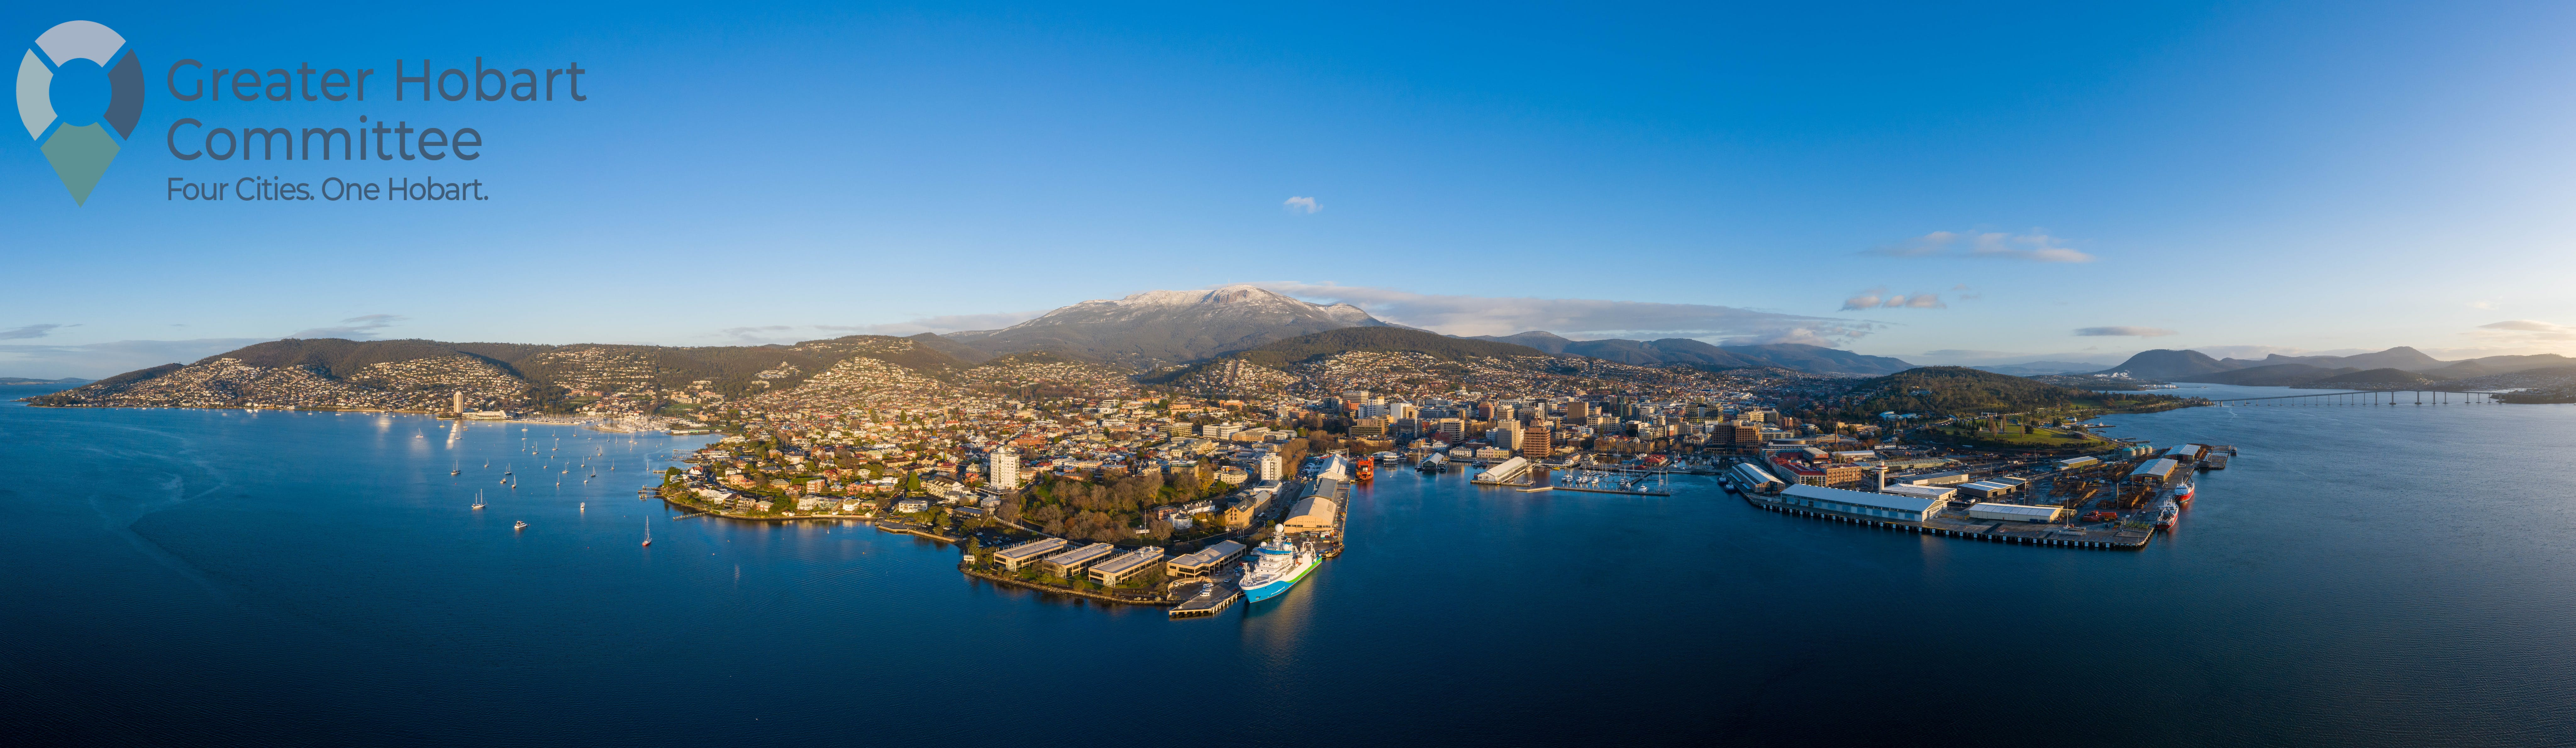 Aerial view of Hobart taken from the water